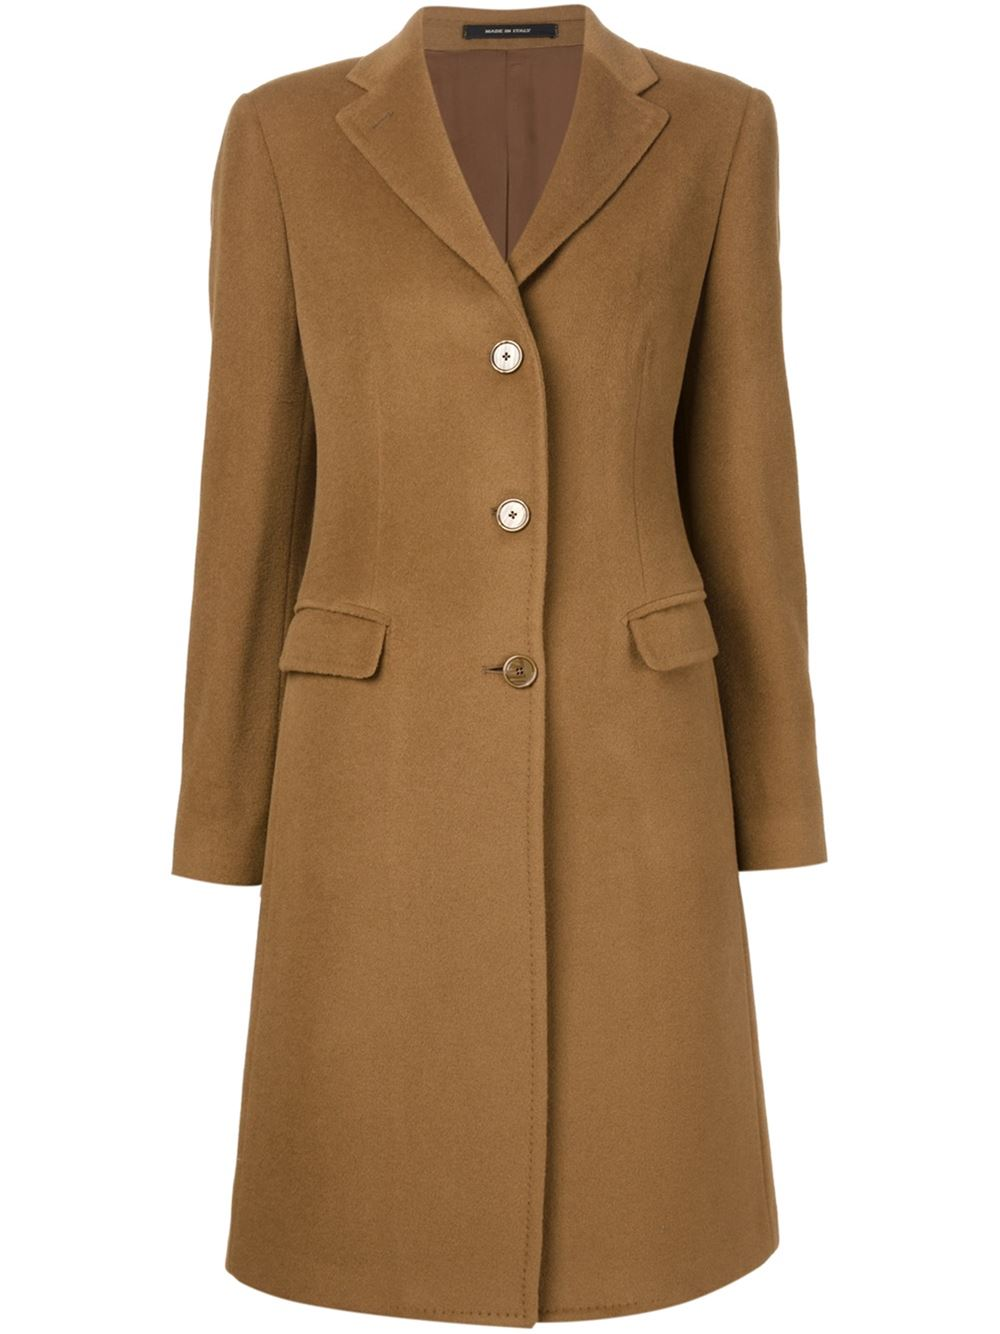 Camel coloured alpaca-wool blend classic overcoat from Tagliatore